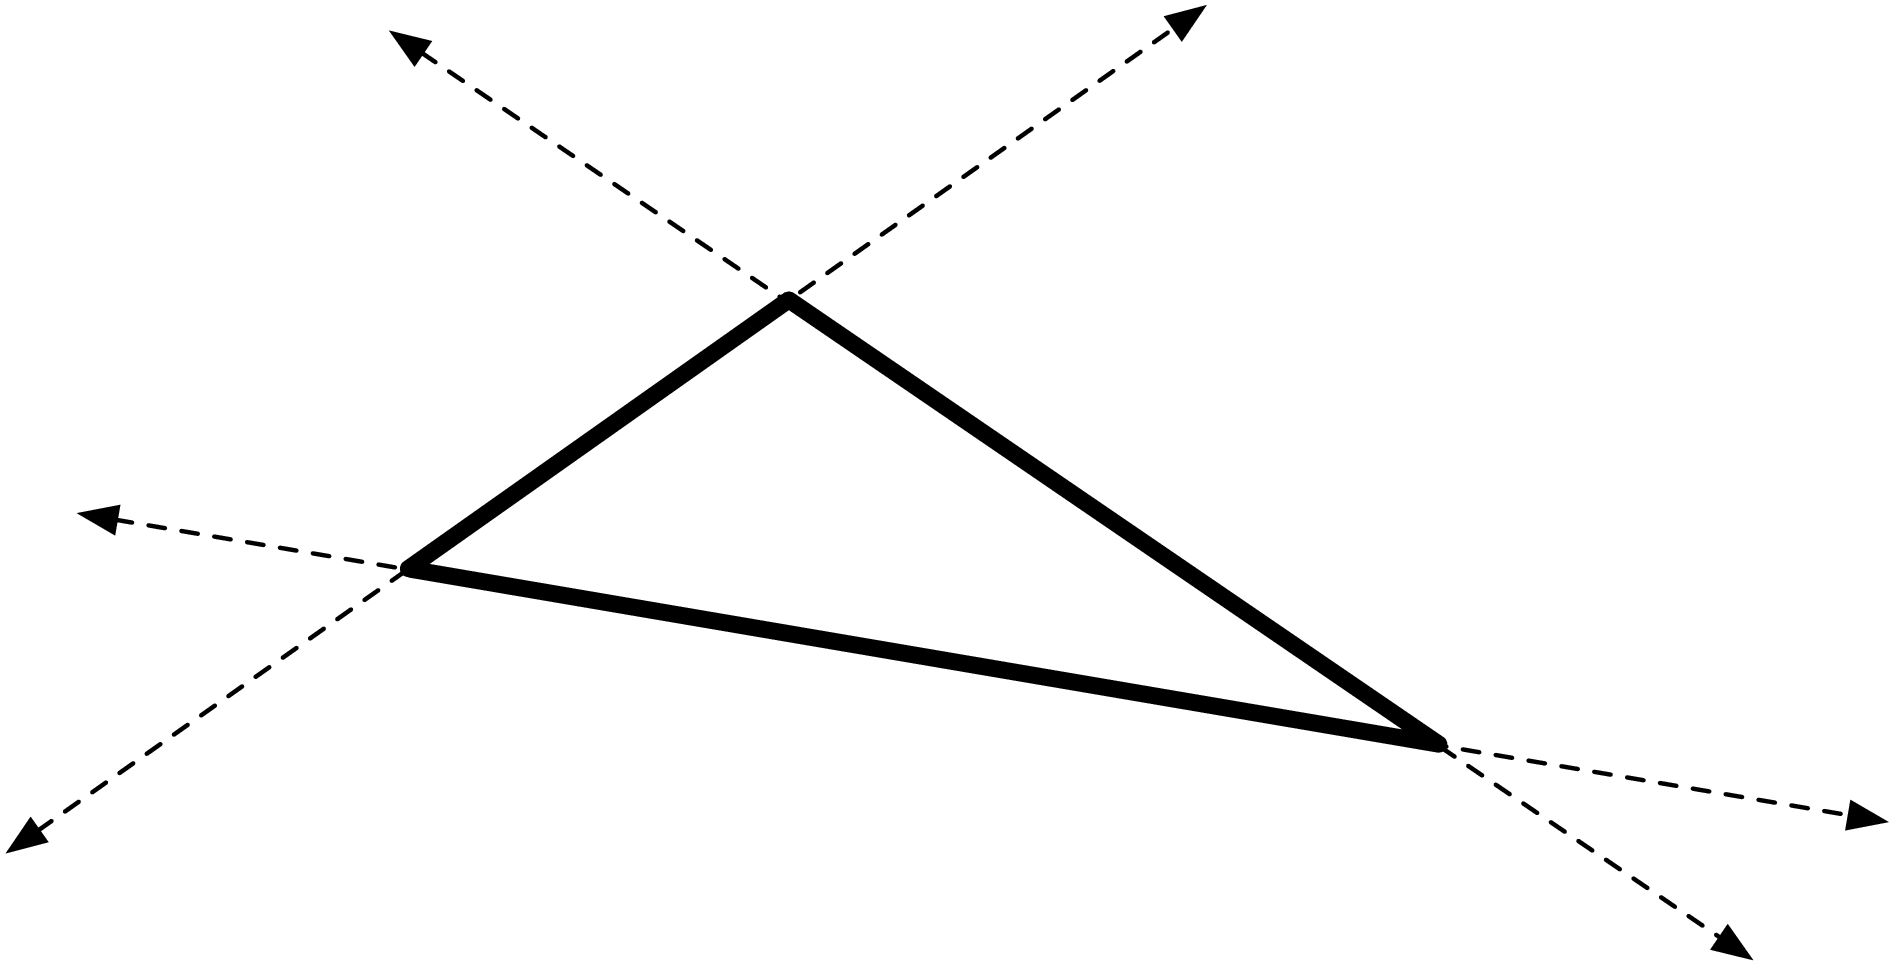 \includegraphics[width=0.8\textwidth ]{triangles.pdf}